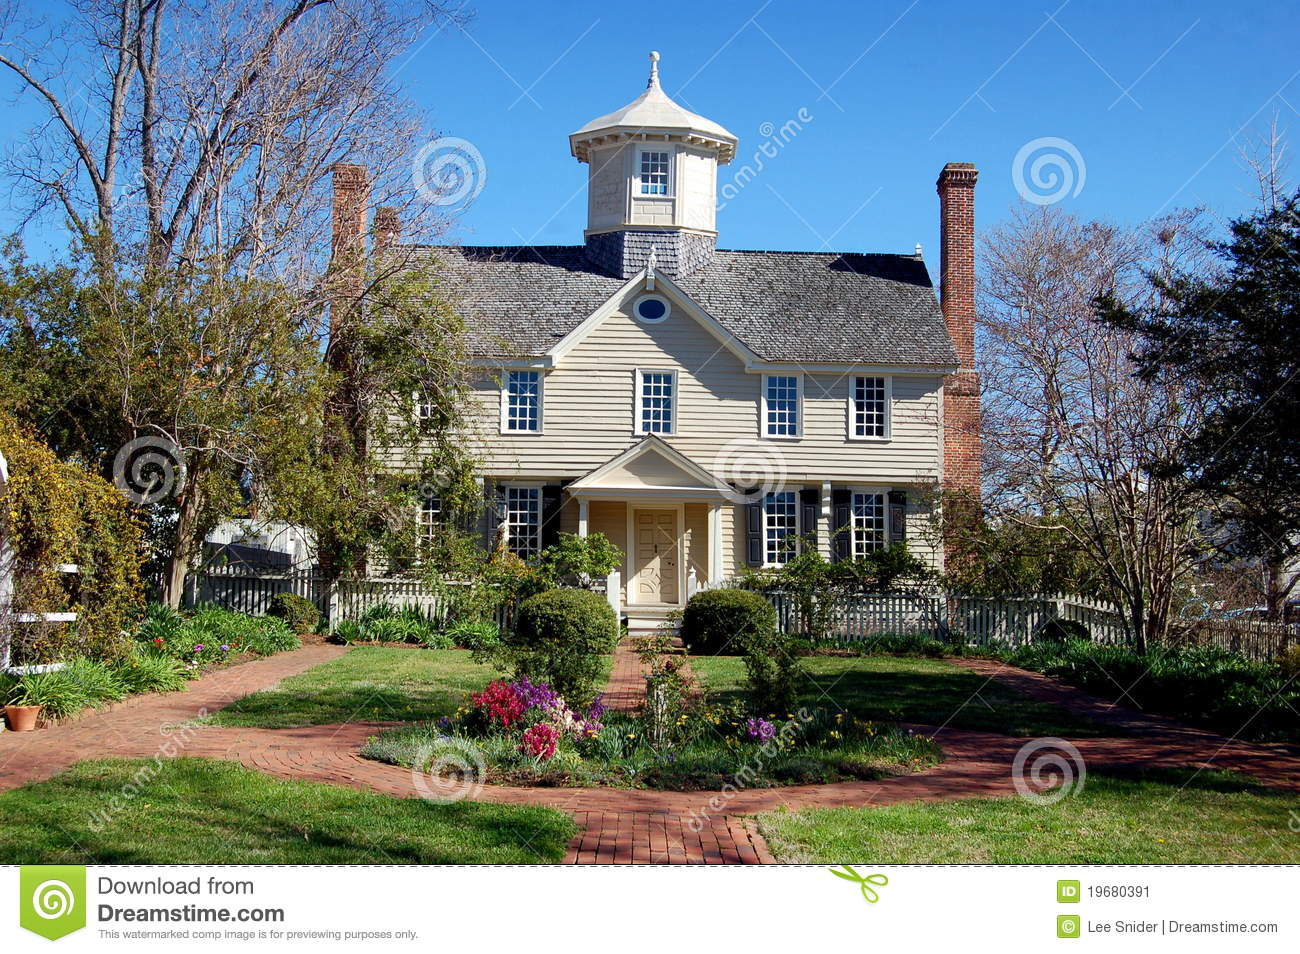 Edenton nc 1725 cupola house stock image image 19680391 for Pictures of houses with cupolas